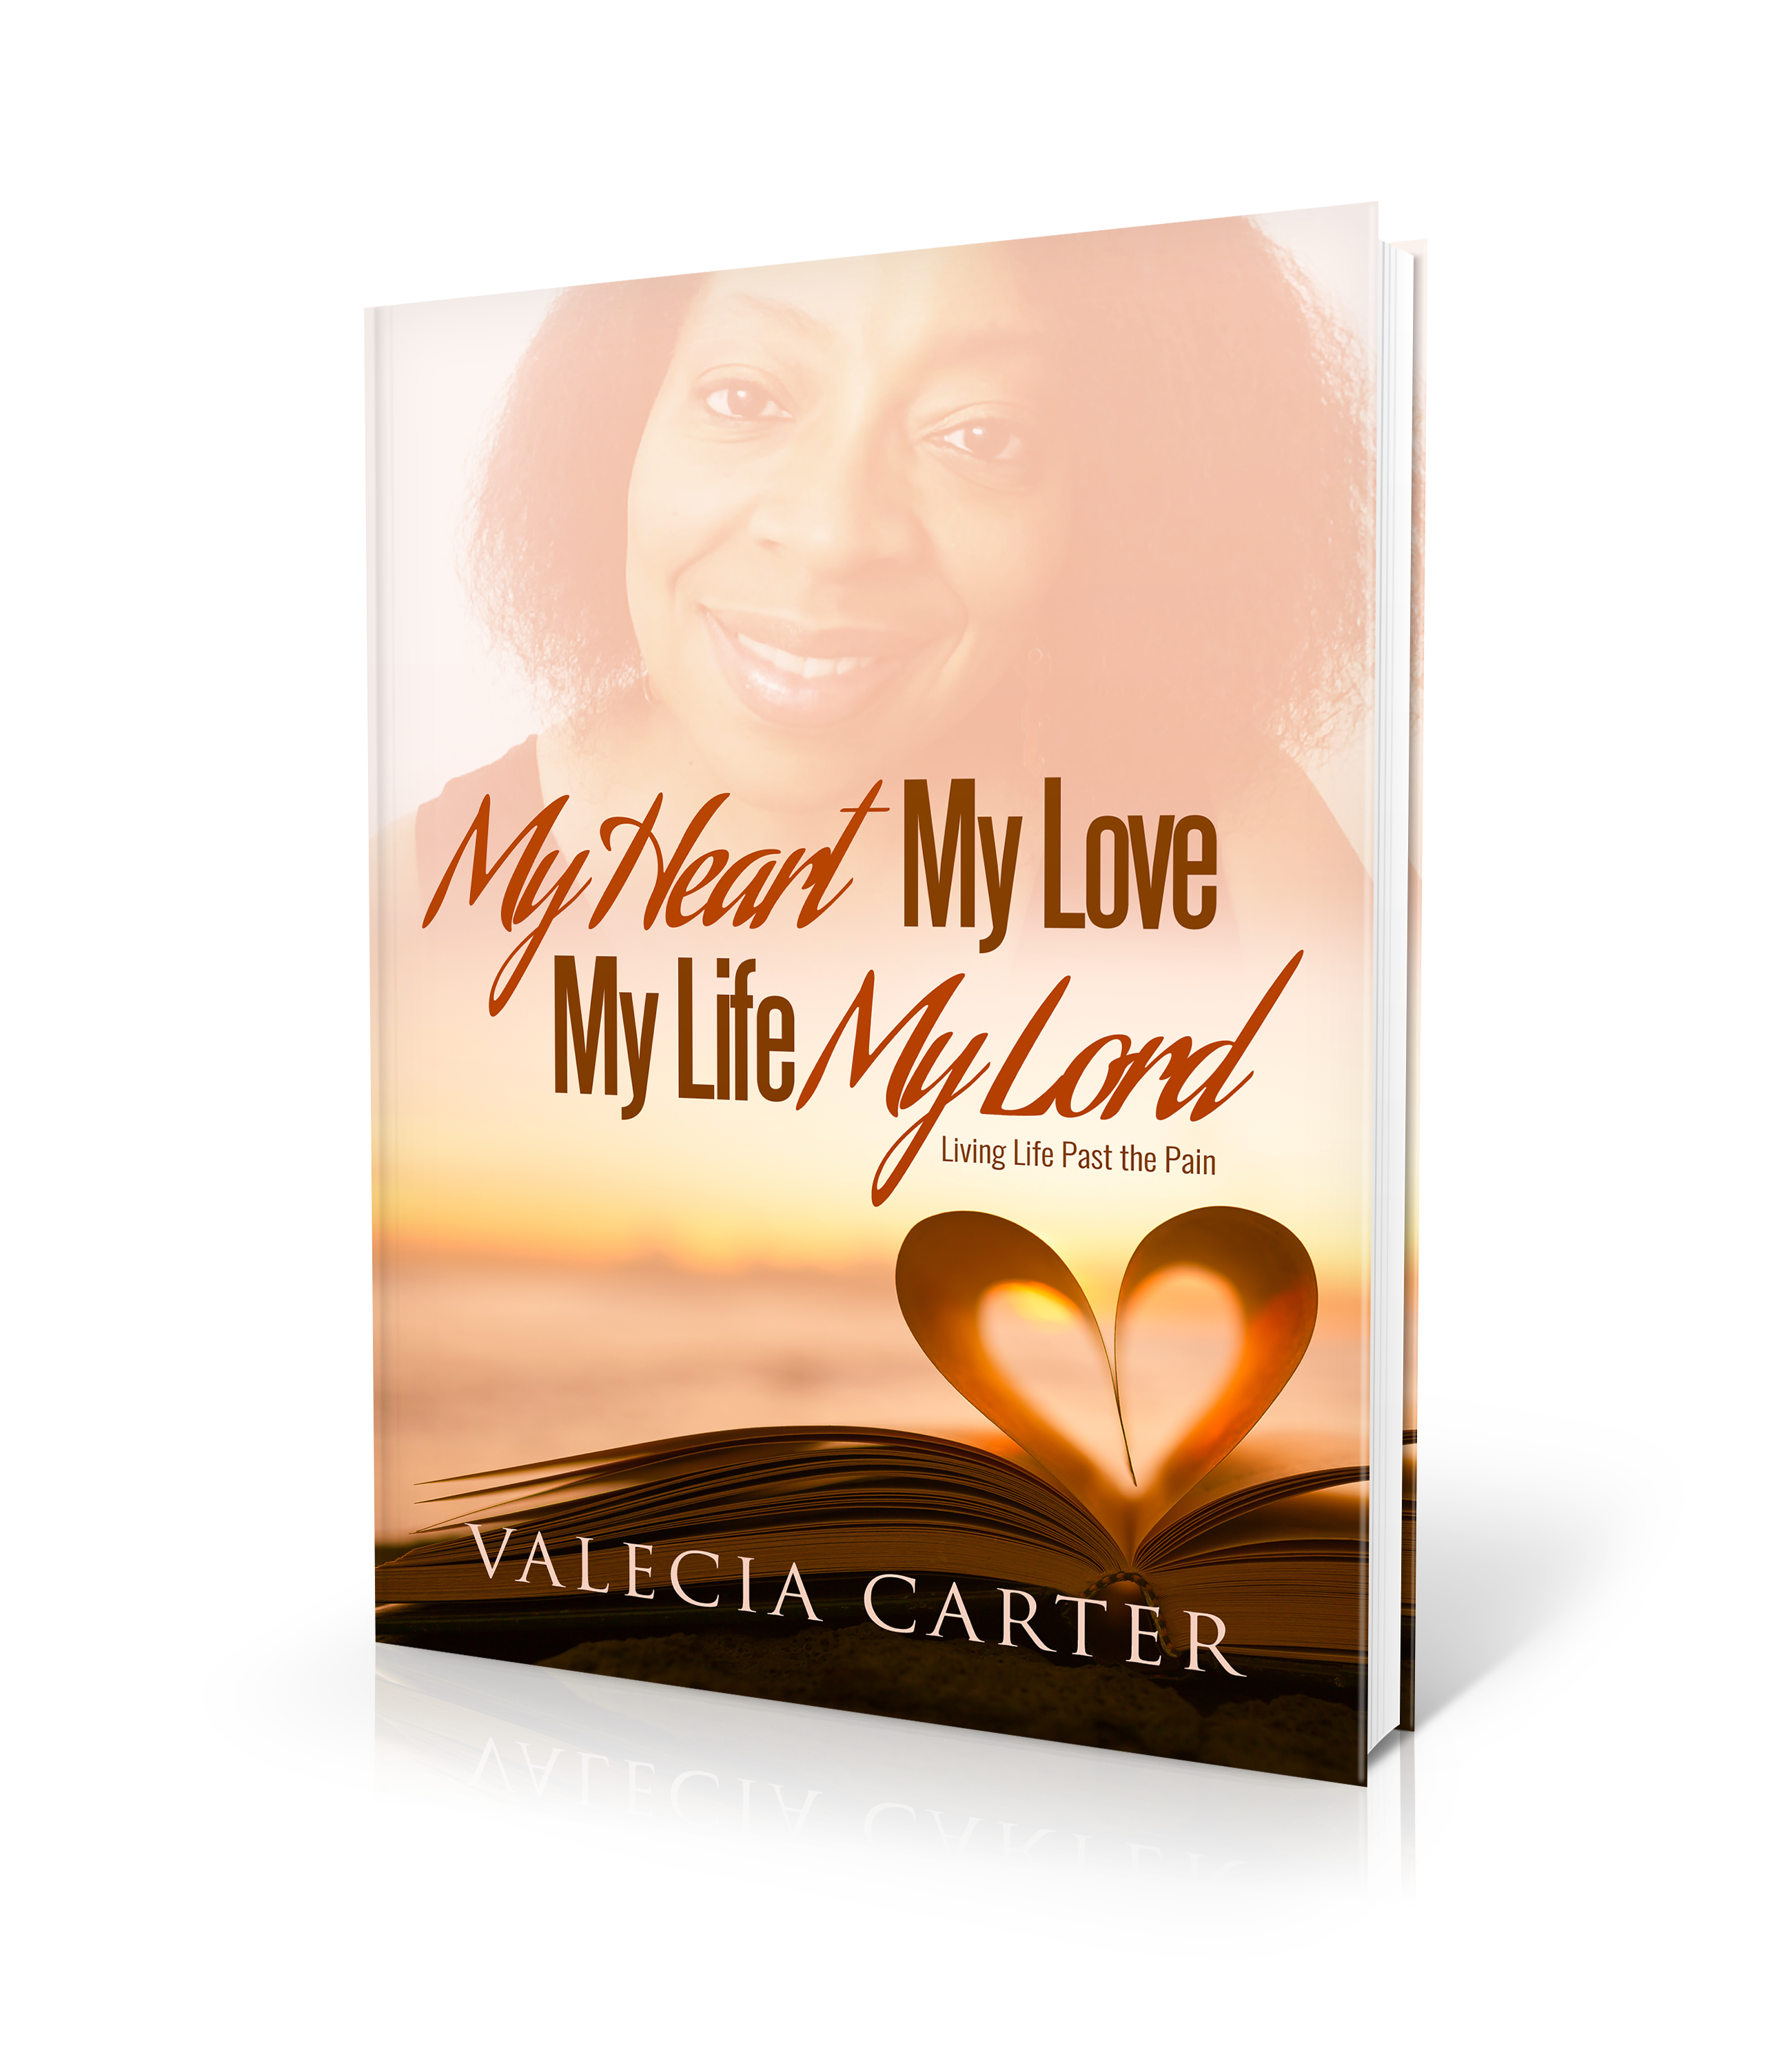 my_heart_my_love_my_life_my_lord_living_past_the_pain_valecia_carter